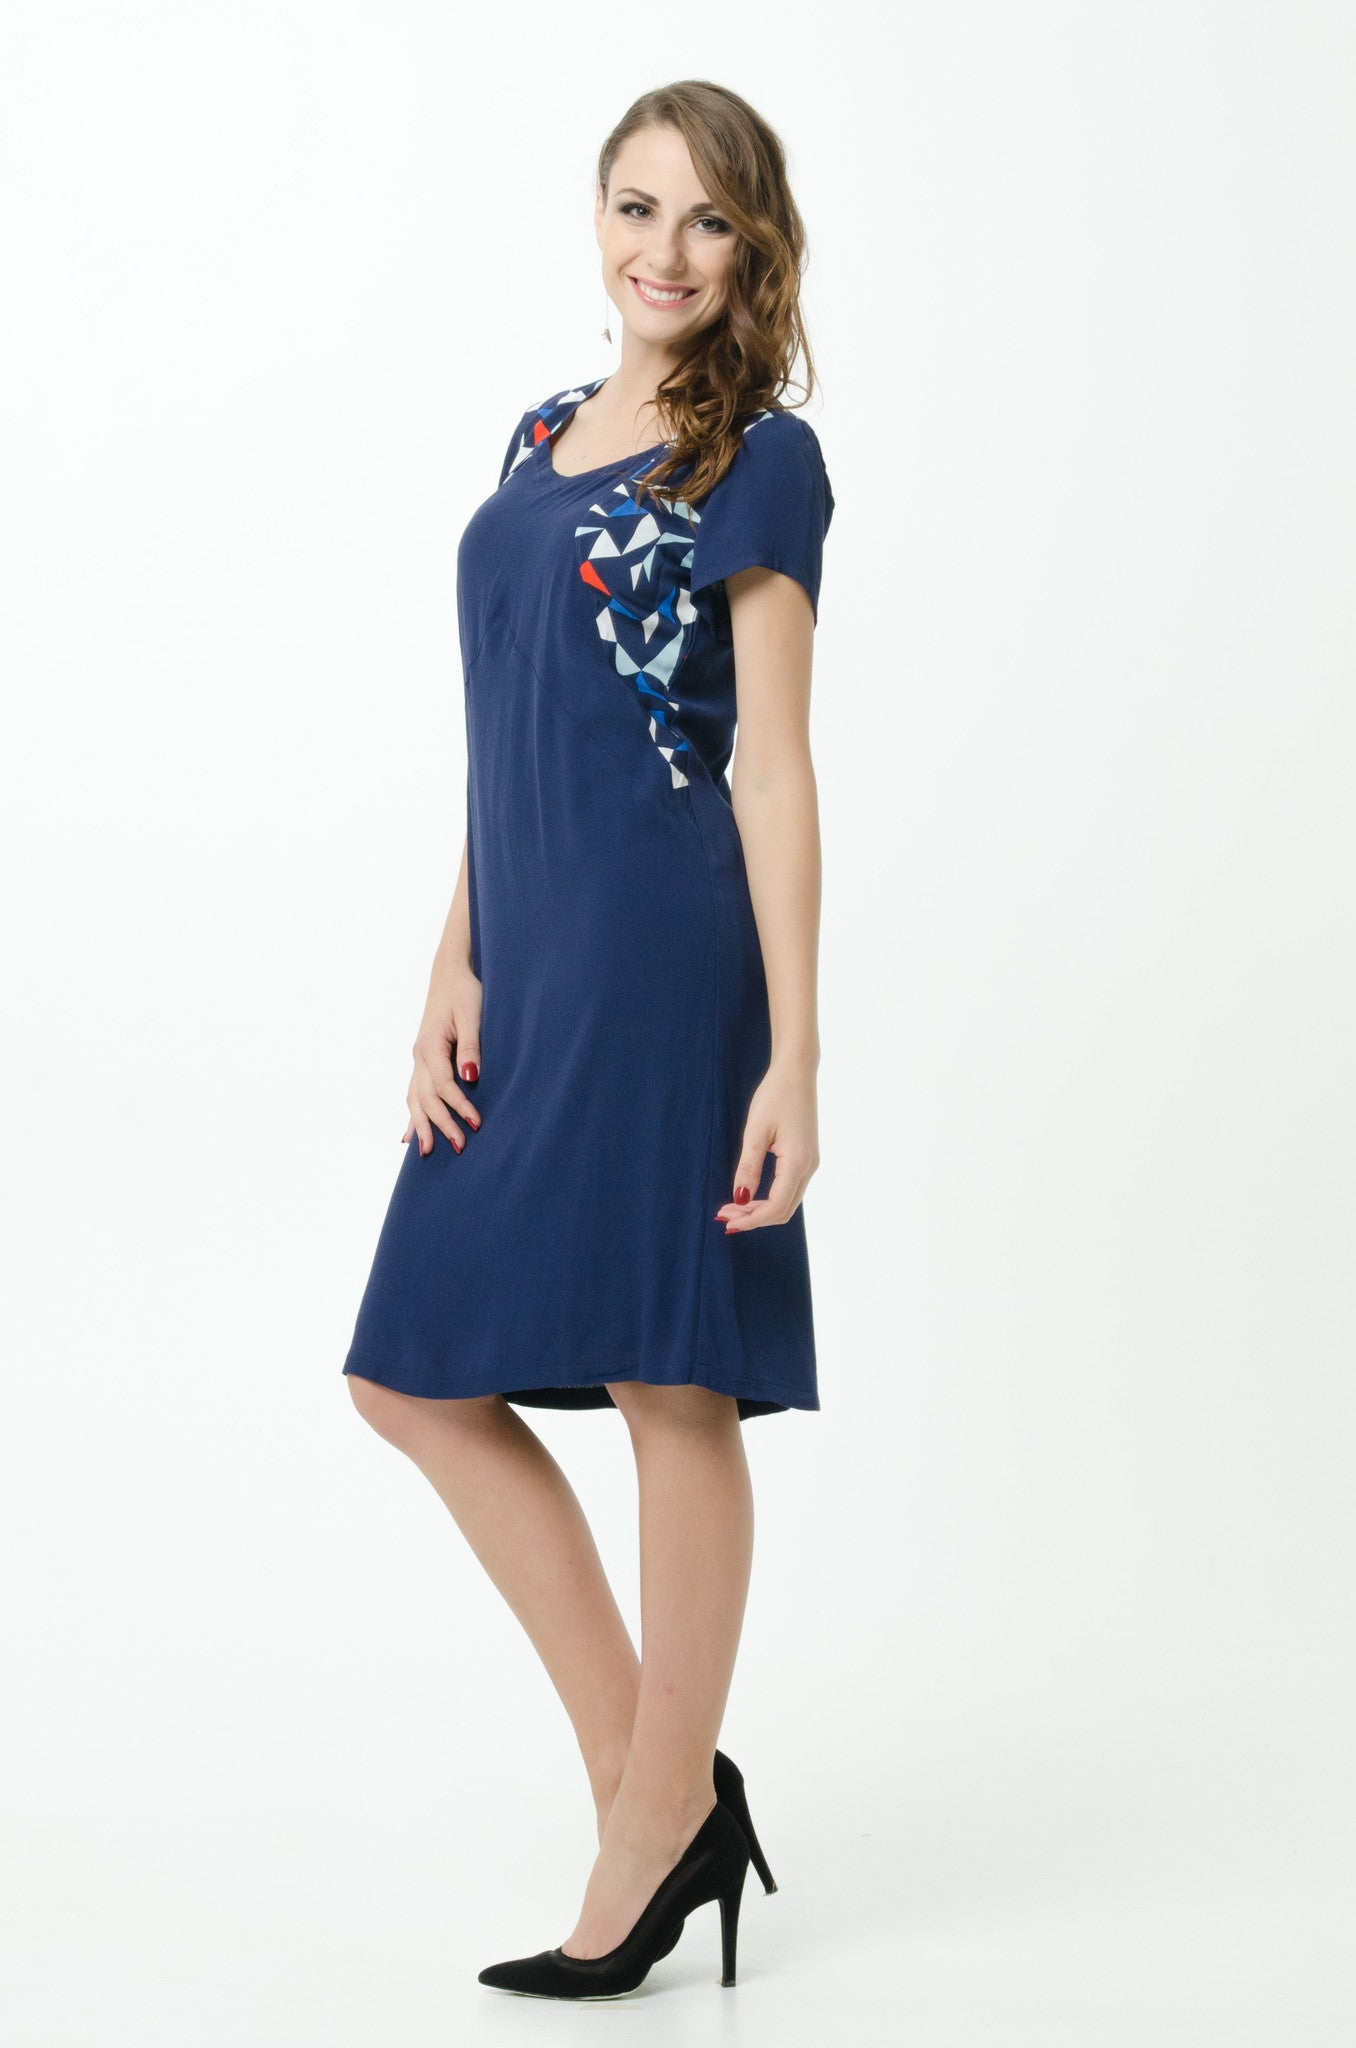 Vesta Inset Dress - Nautical was $228 now $188